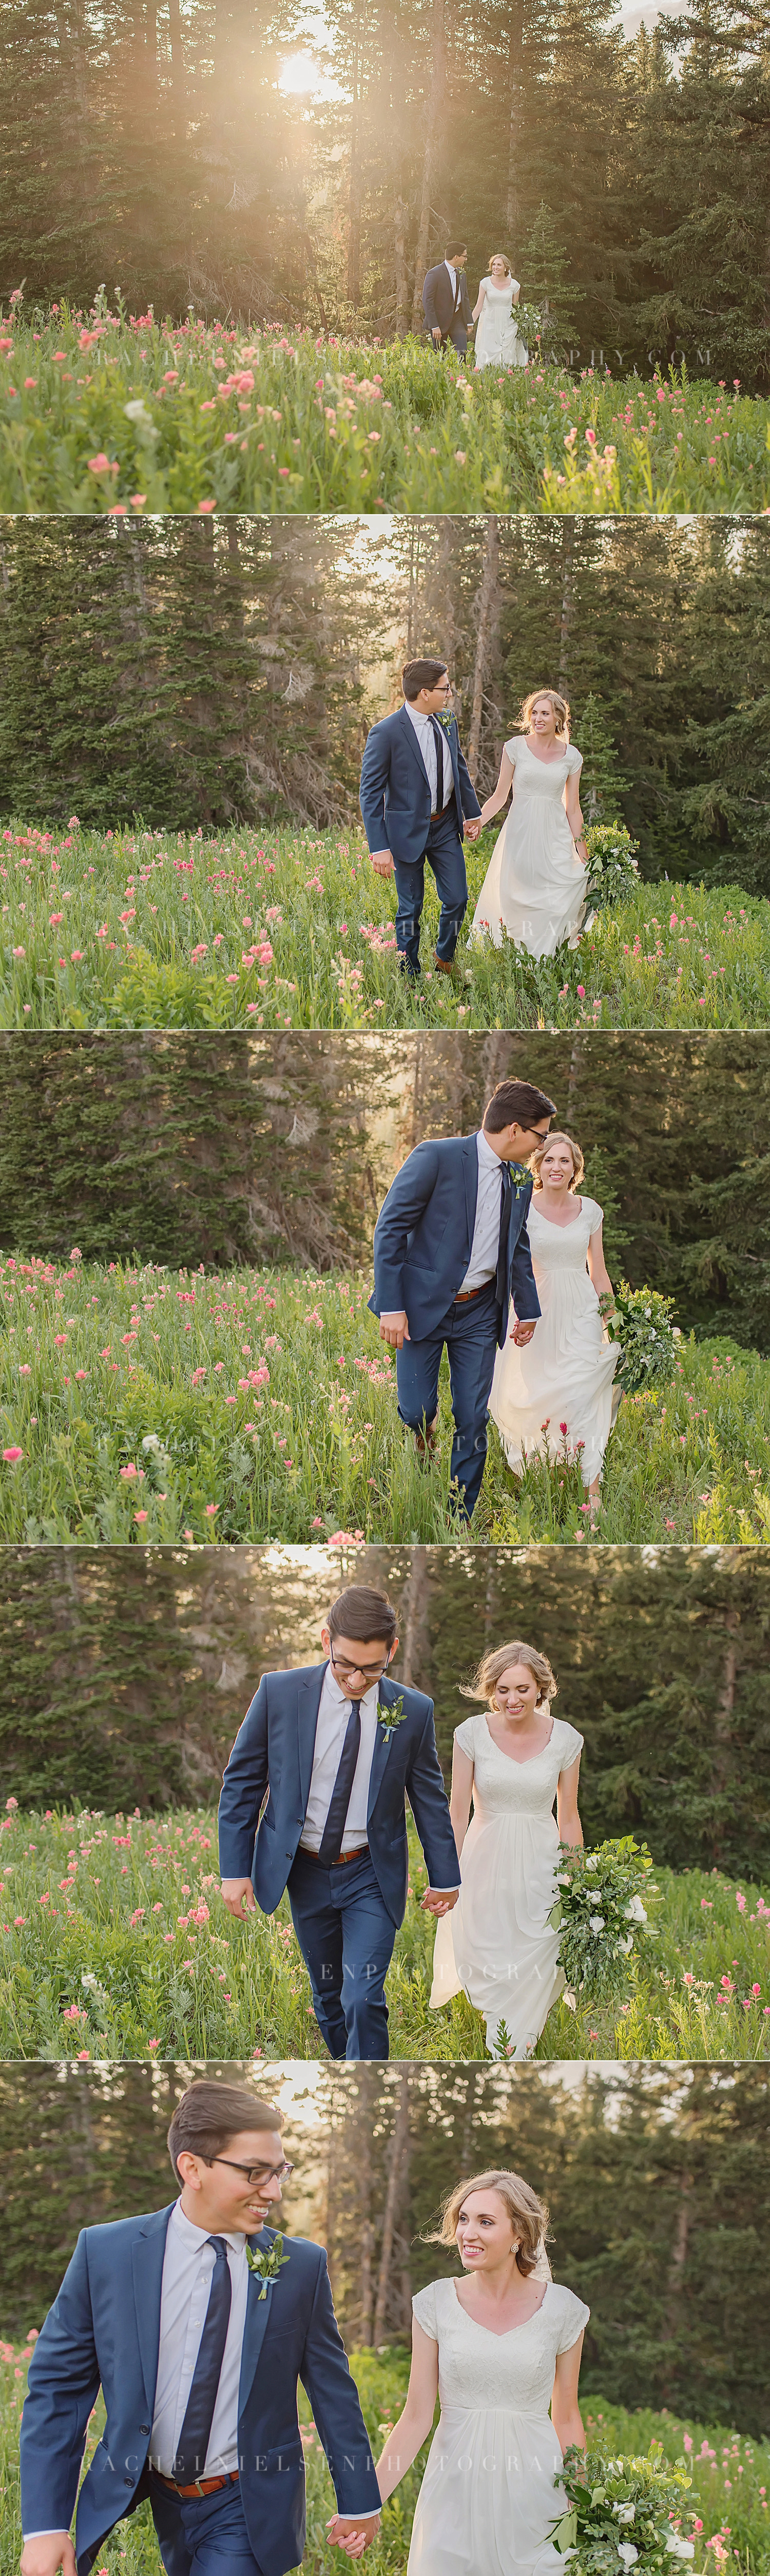 Albion-basin-bride-and-groom-8